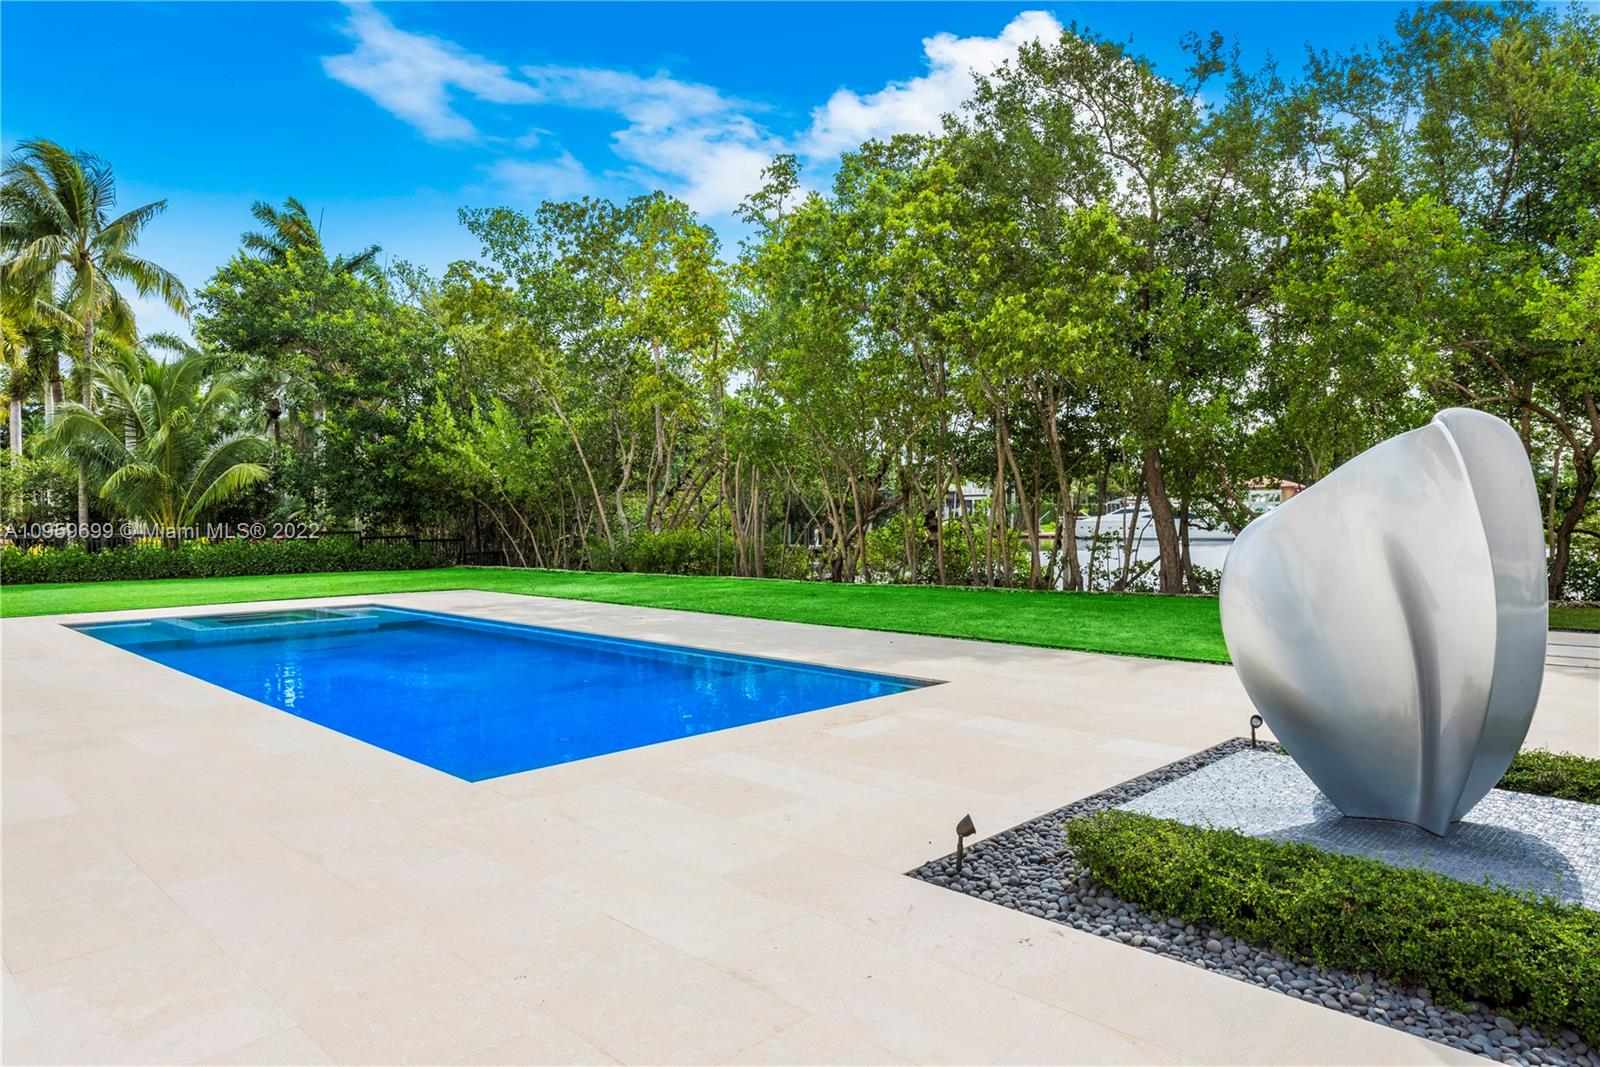 2021 Masterpiece located in one of only two private & gated Coral Gables communities. Set on almost 2 acres w 200' of water & direct ocean access, this magnificent estate has been meticulously designed for the most discerning Buyer. Spectacular soaring entry leads to six beds & 7 baths spread over 12,829 SqFt of la. Chef's kitchen is an epicurean dream w gourmet kitchen featuring gas cook-top, cooking island, food warmer, double ovens & a large window overlooking  pool & waterway. Covered terraces, 2nd story terraces and expansive pool area featuring a fully equipped outdoor kitchen & dining area w BBQ grill.Gym, indoor rock climbing wall, wine cellar, full home generator & 9car garage (w height for lifts) are some of the luxuries which make this estate one of a kind. (Adj SqFt 13,212)